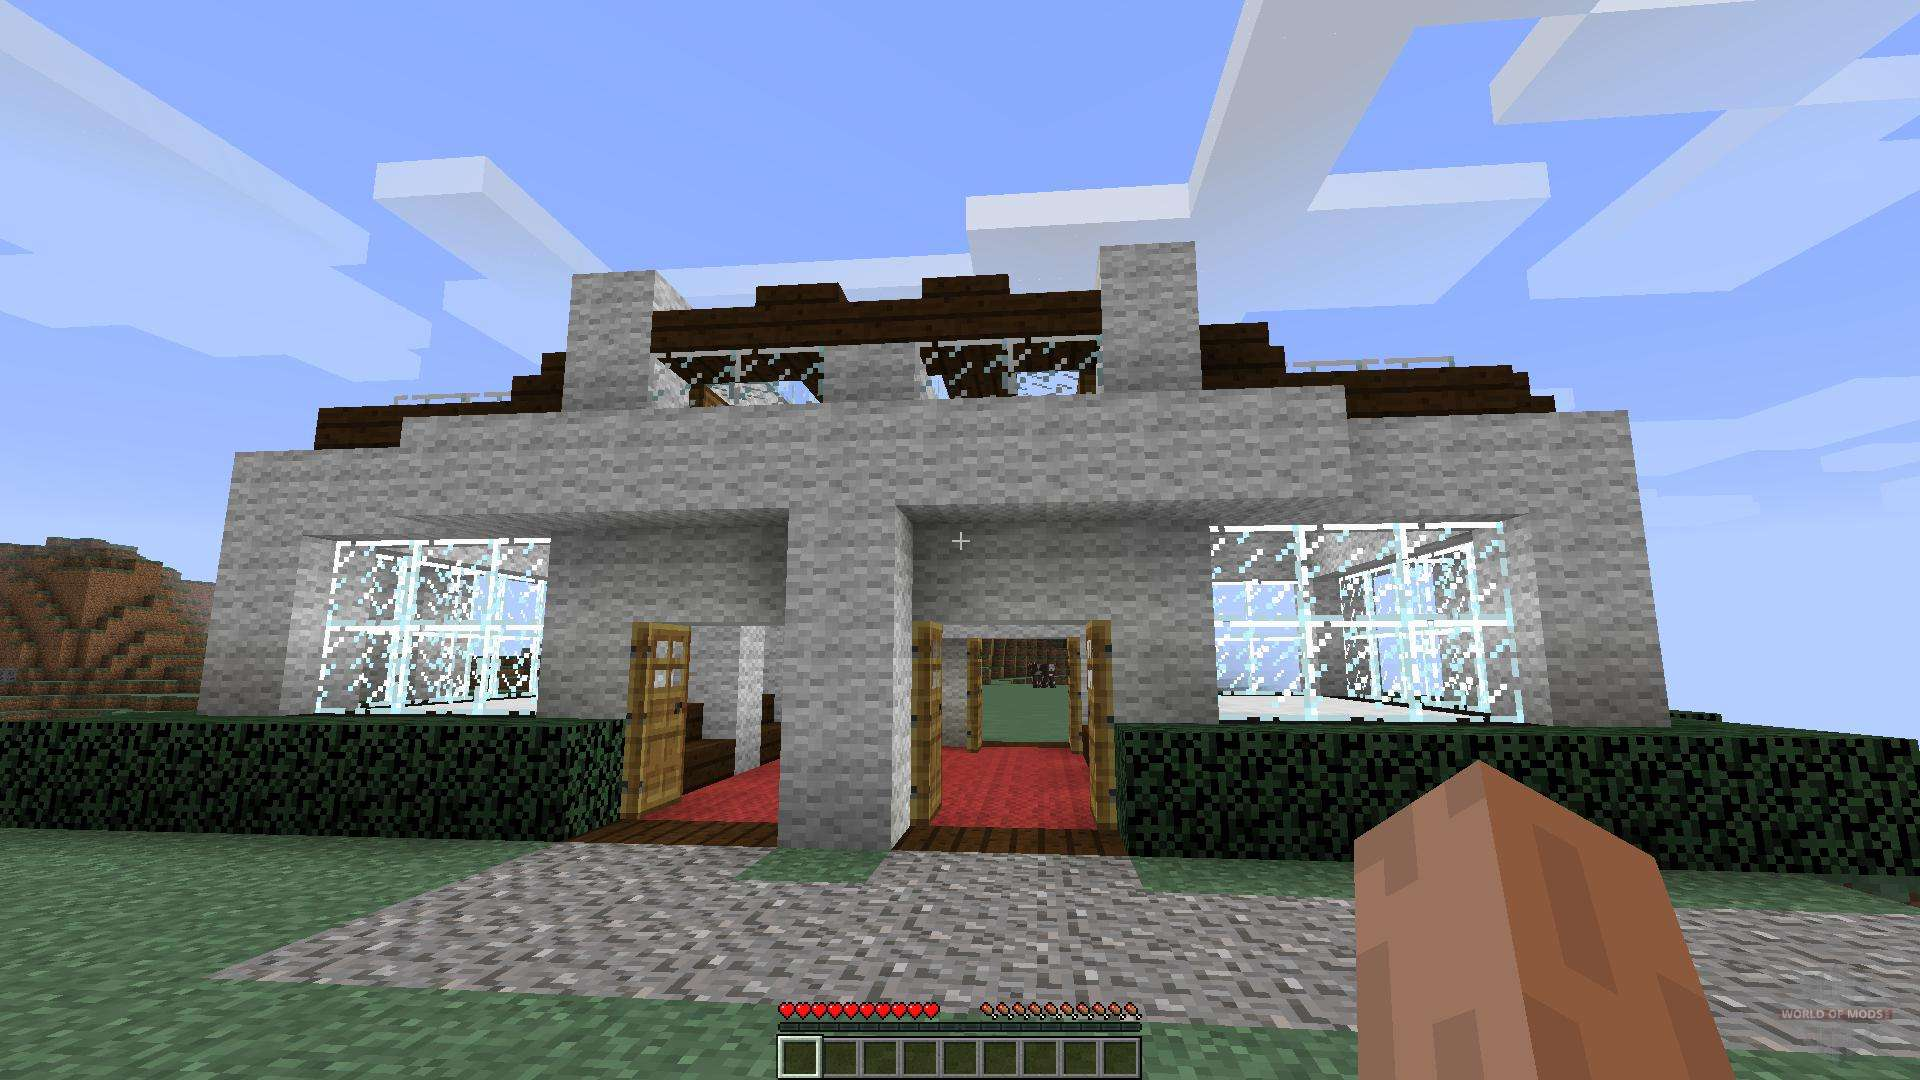 House Designs On An Island 1 8 1 8 8 For Minecraft